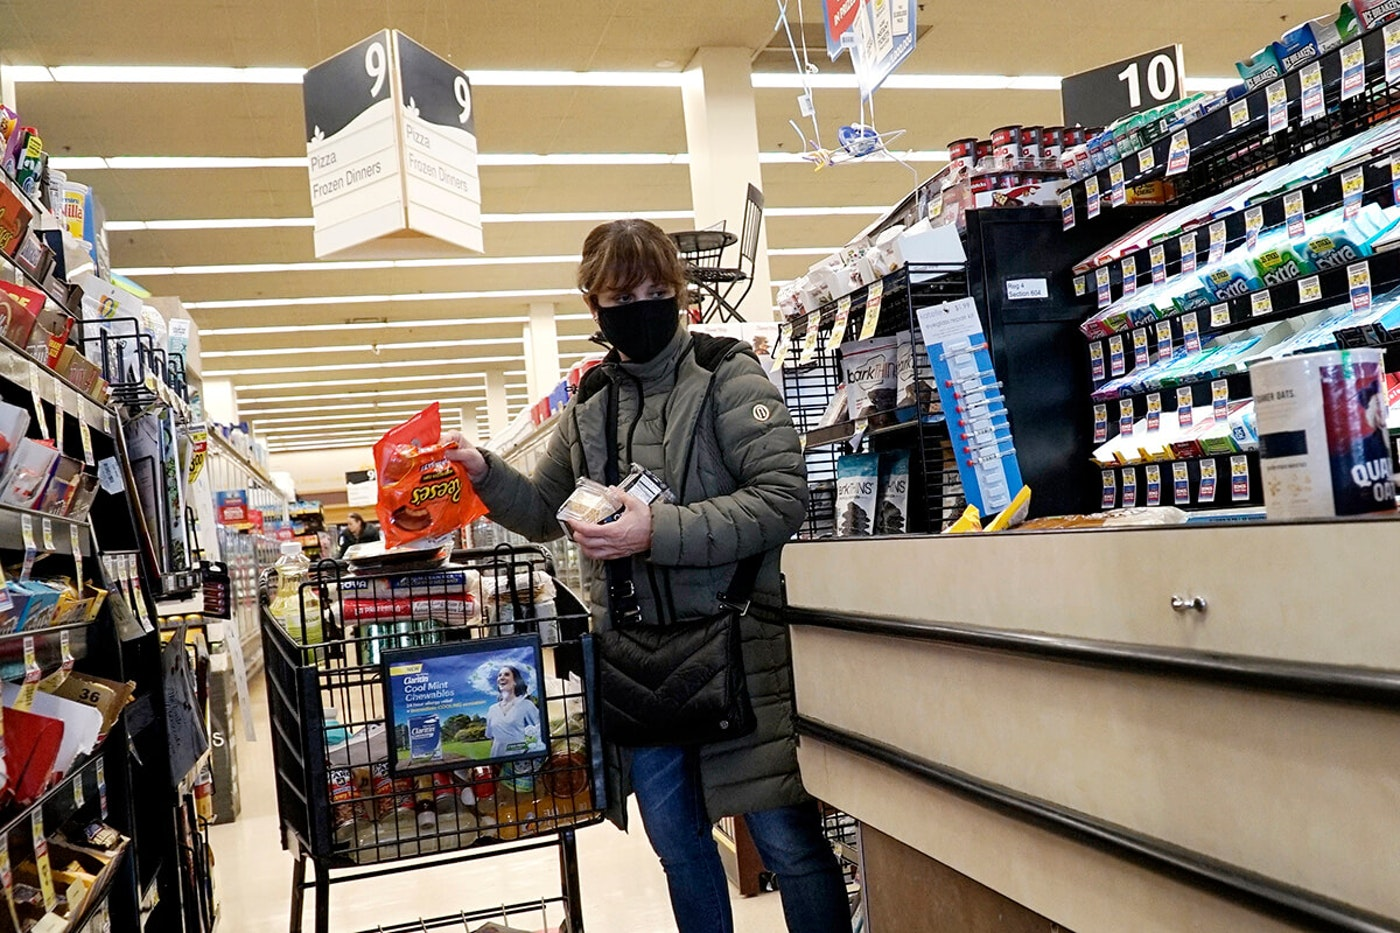 masked shopper loading groceries onto cashier's belt